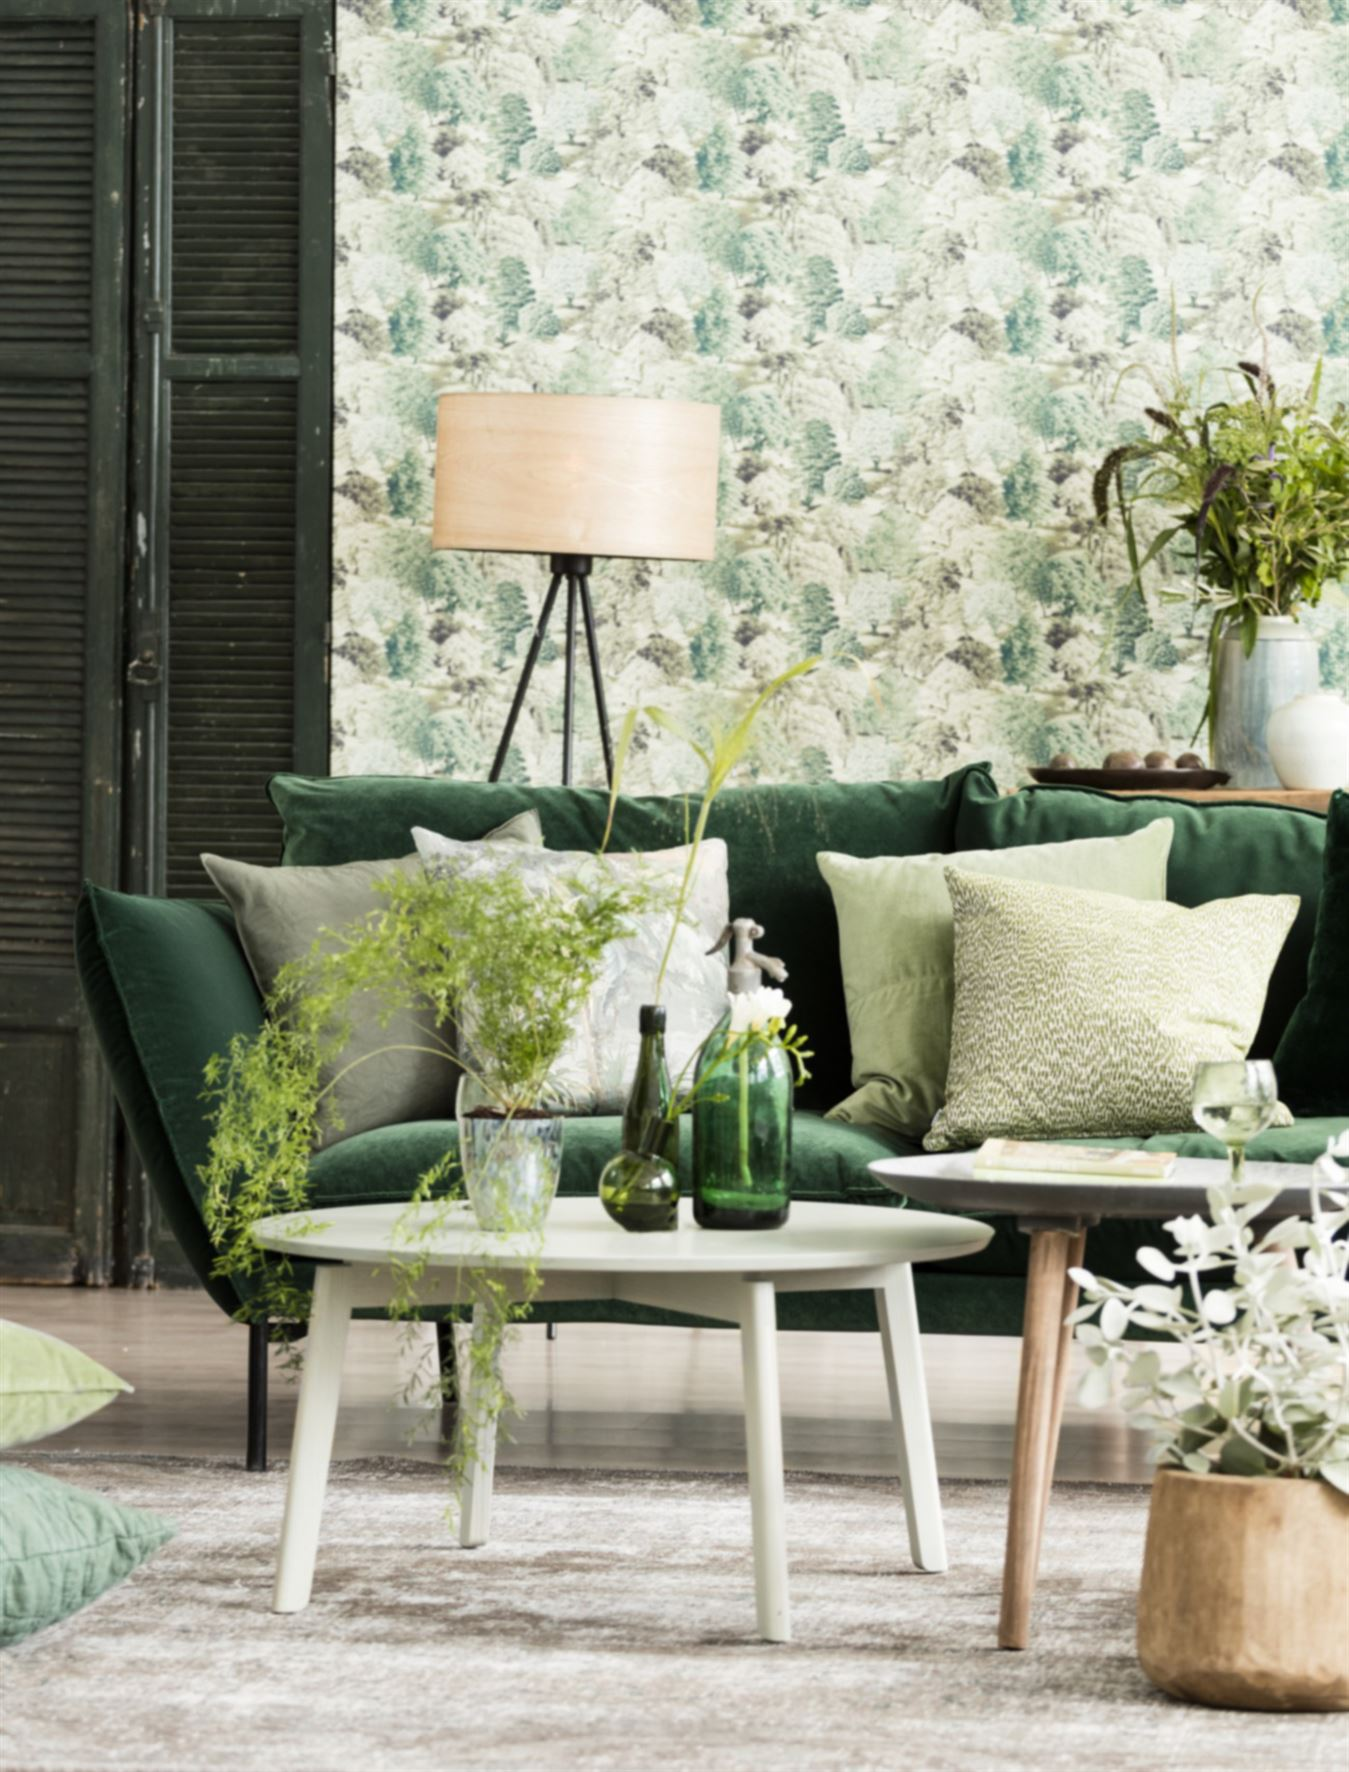 Mettre du vert dans la maison planete deco a homes world for Mesas auxiliares zara home